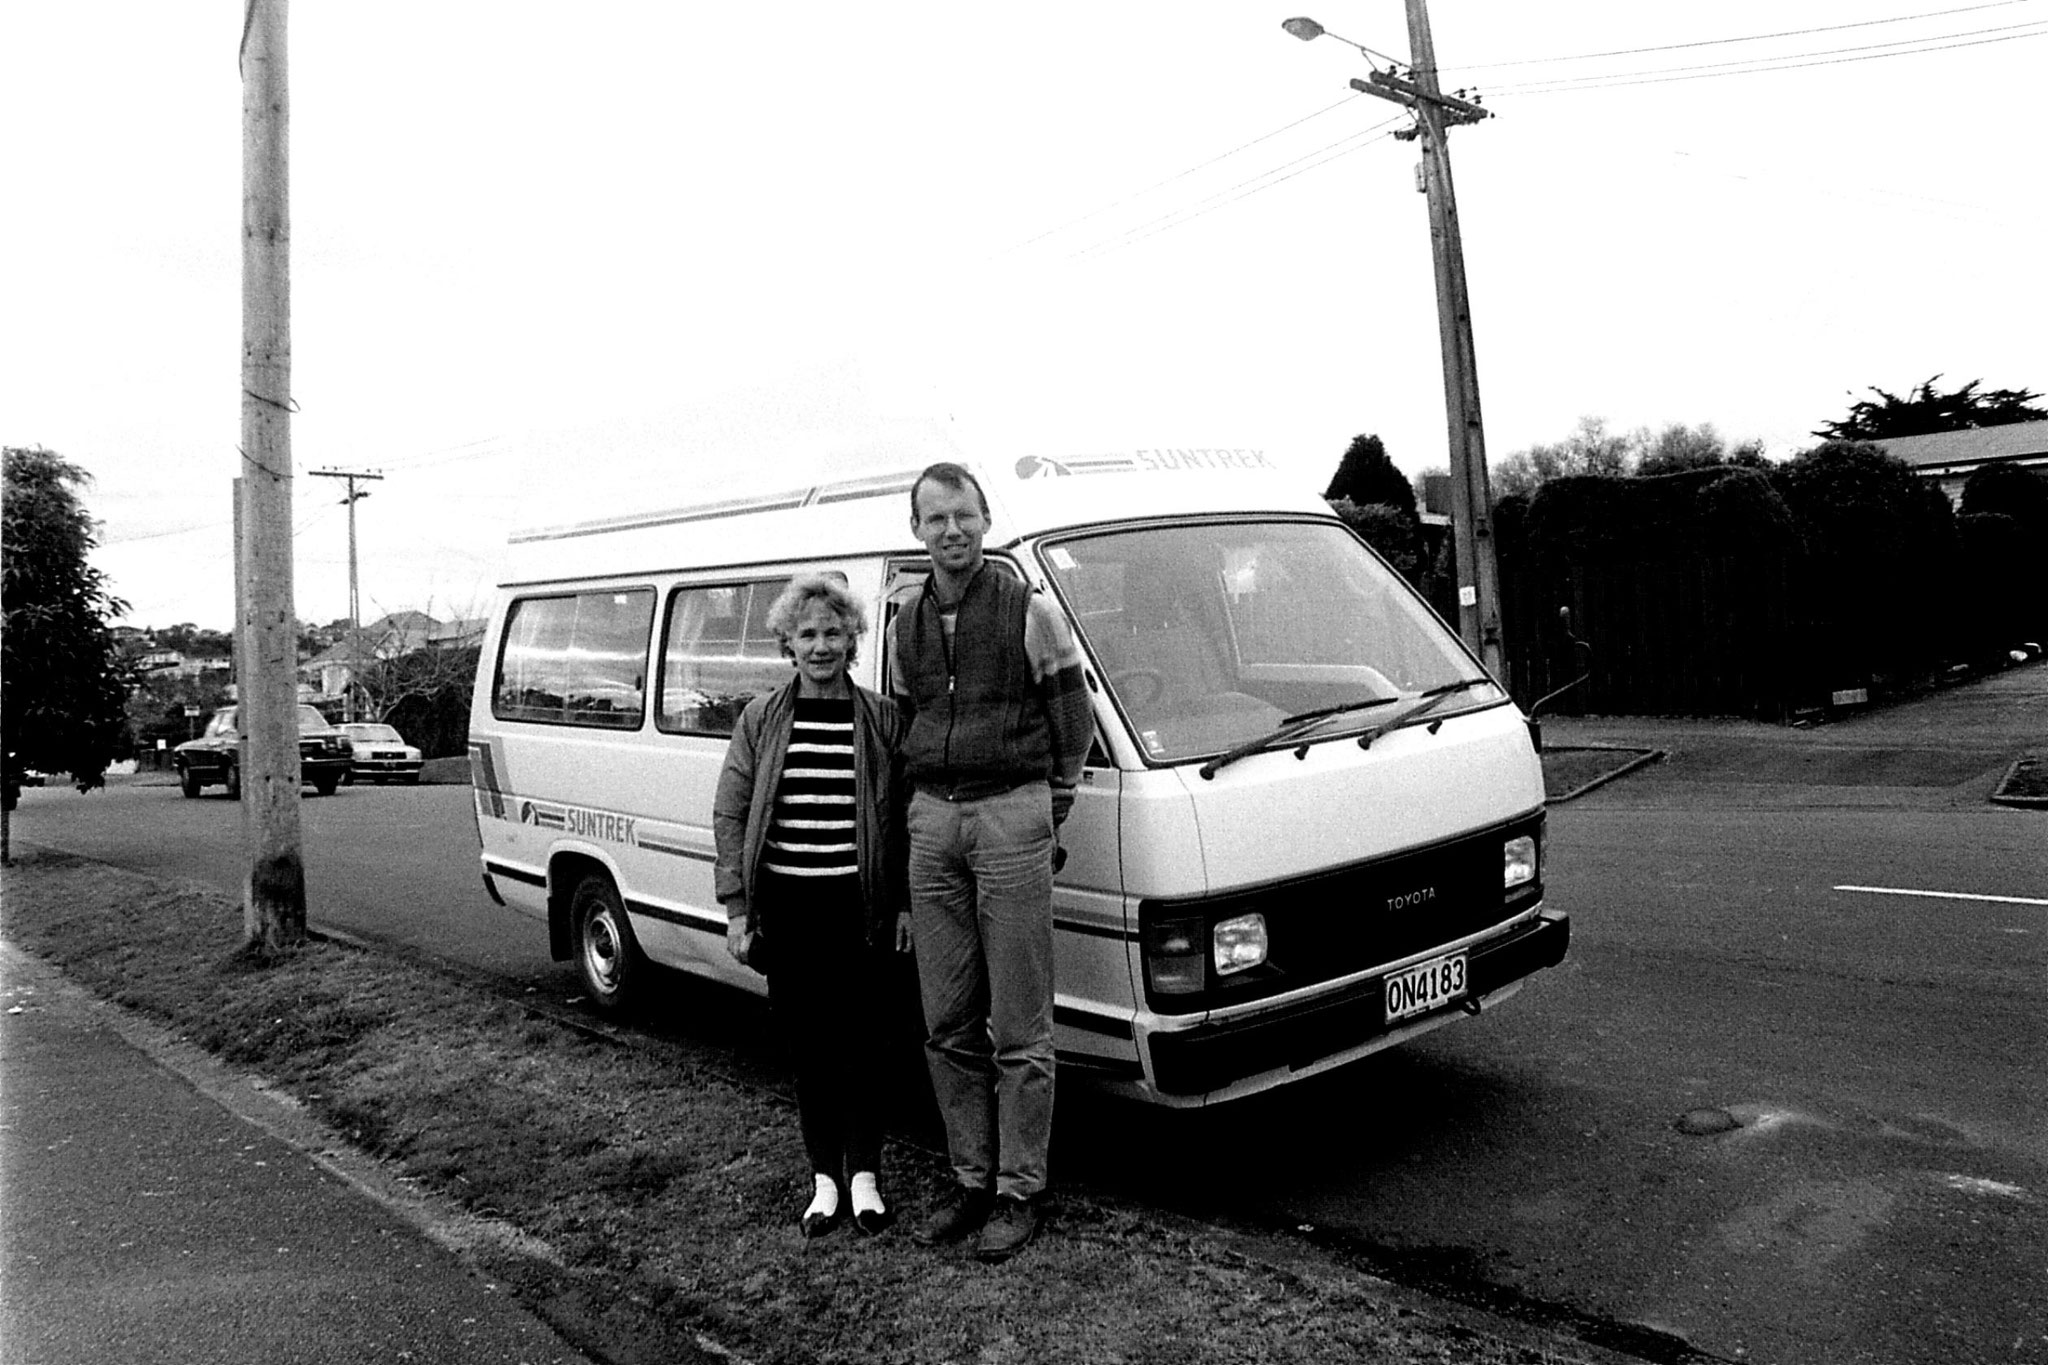 1/9/1990: 18: Auckland, R Elsie and campervan